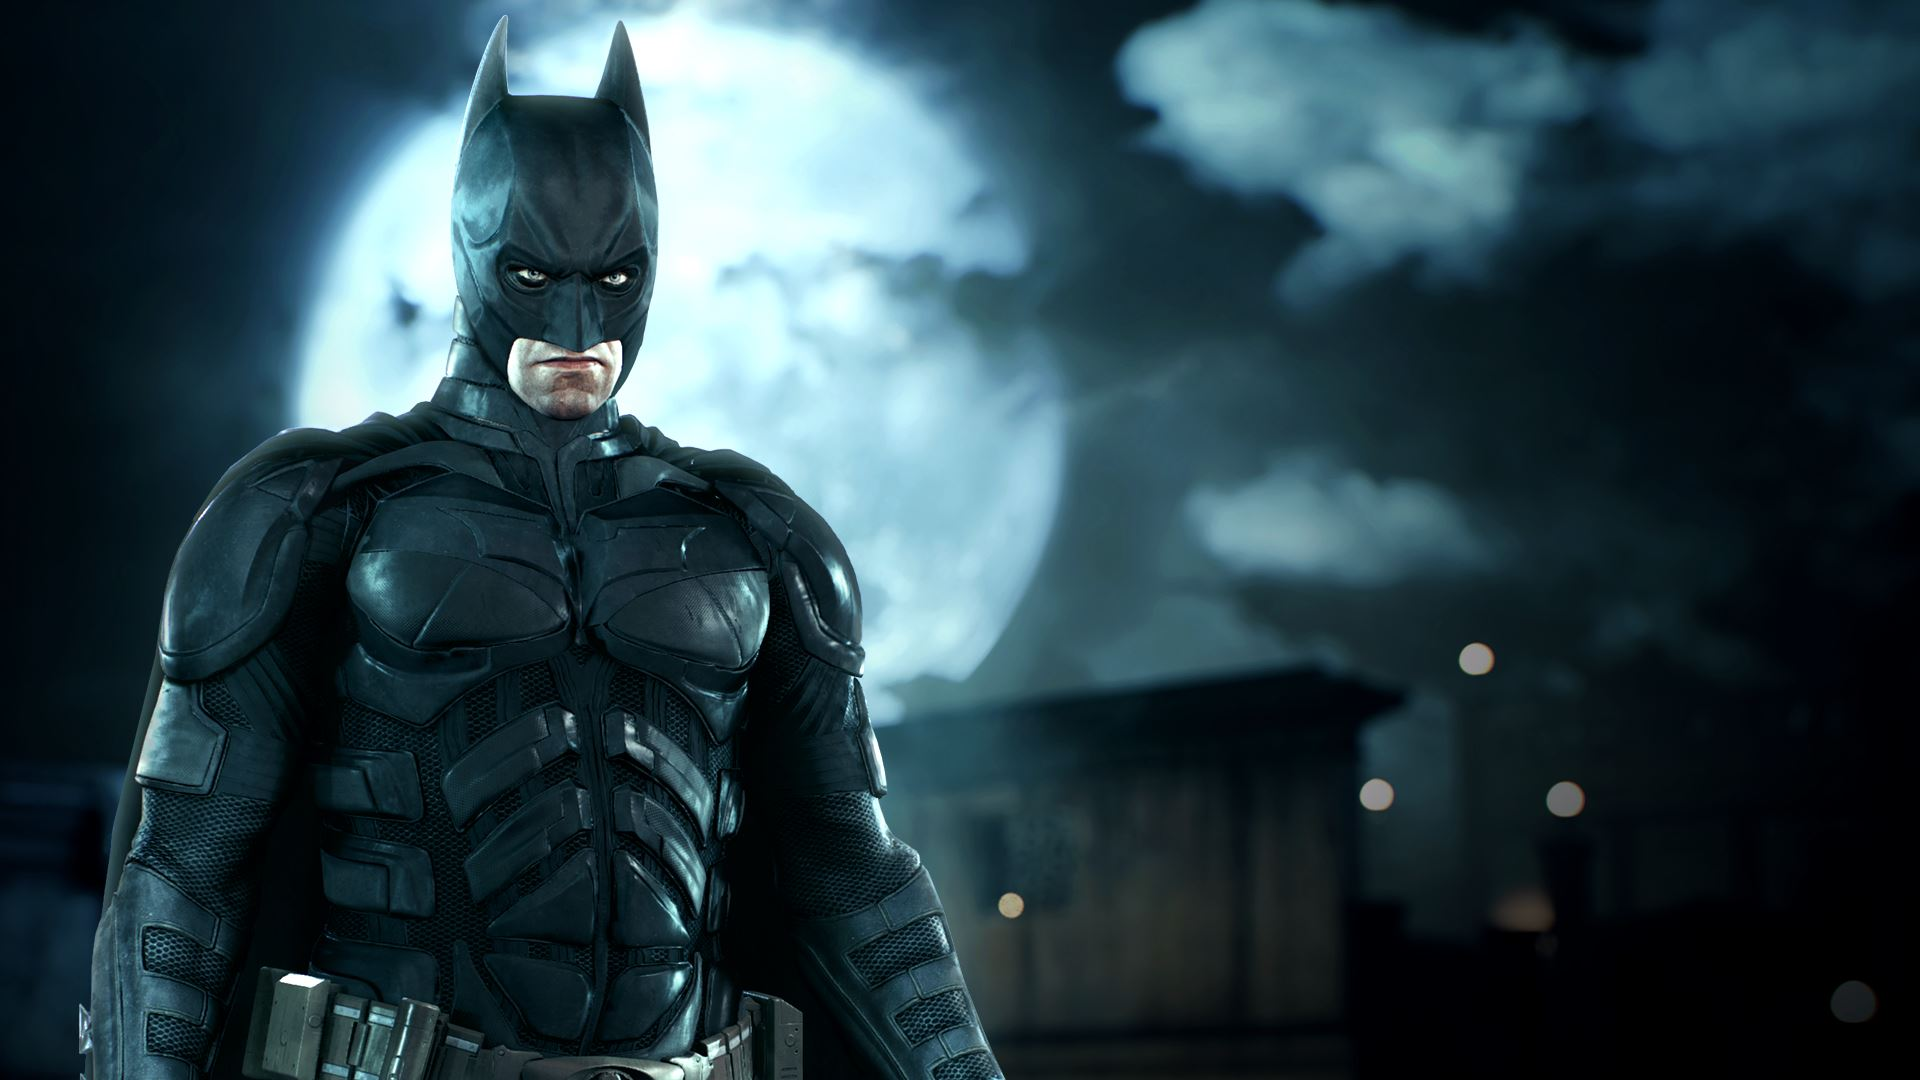 Photo of Zack Snyder Posted A New Picture Of Batman's Suit And It's BADASS!